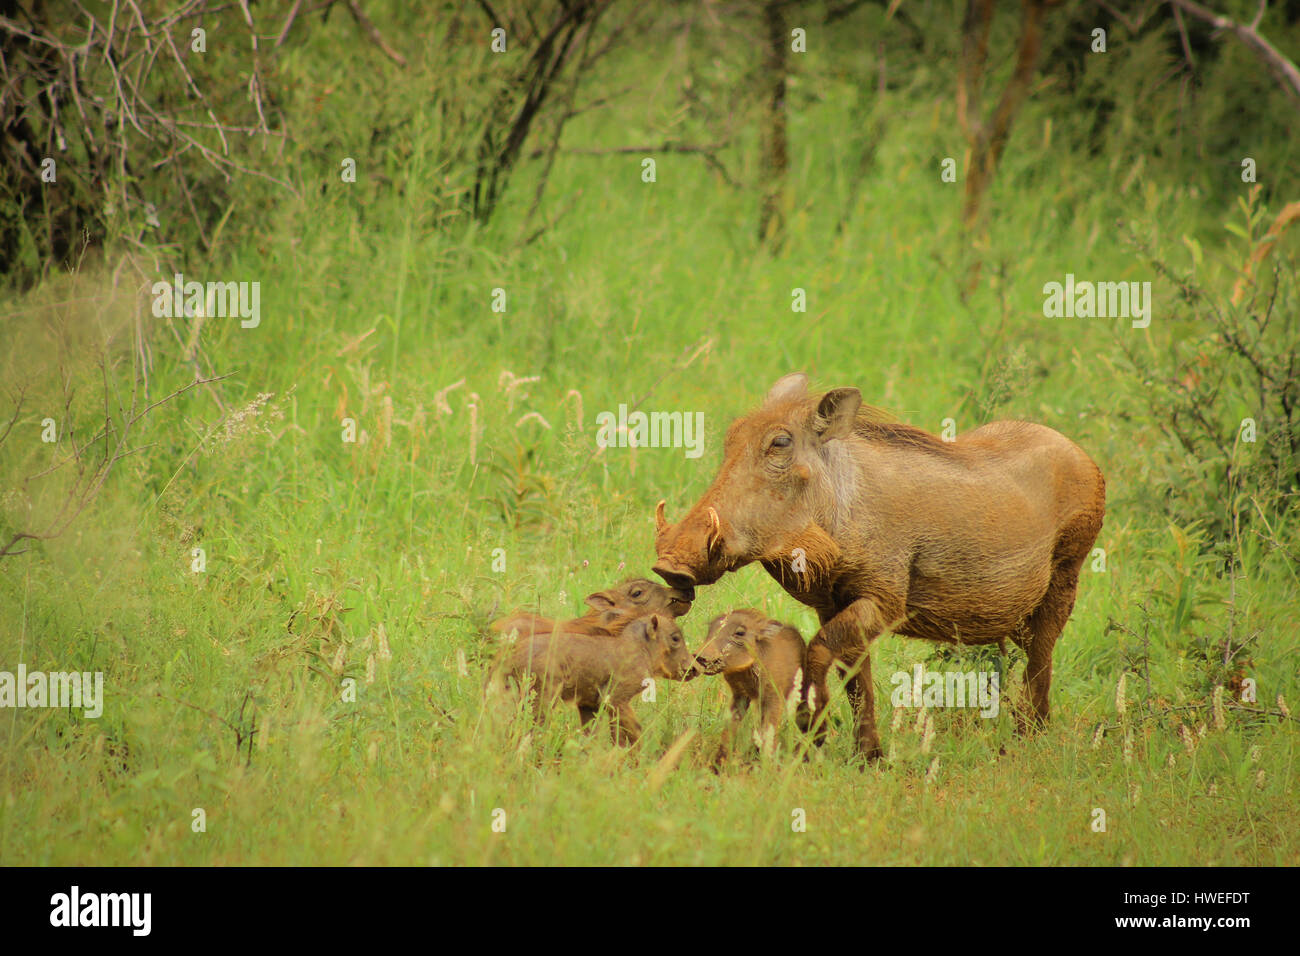 Female warthog with her children. - Stock Image